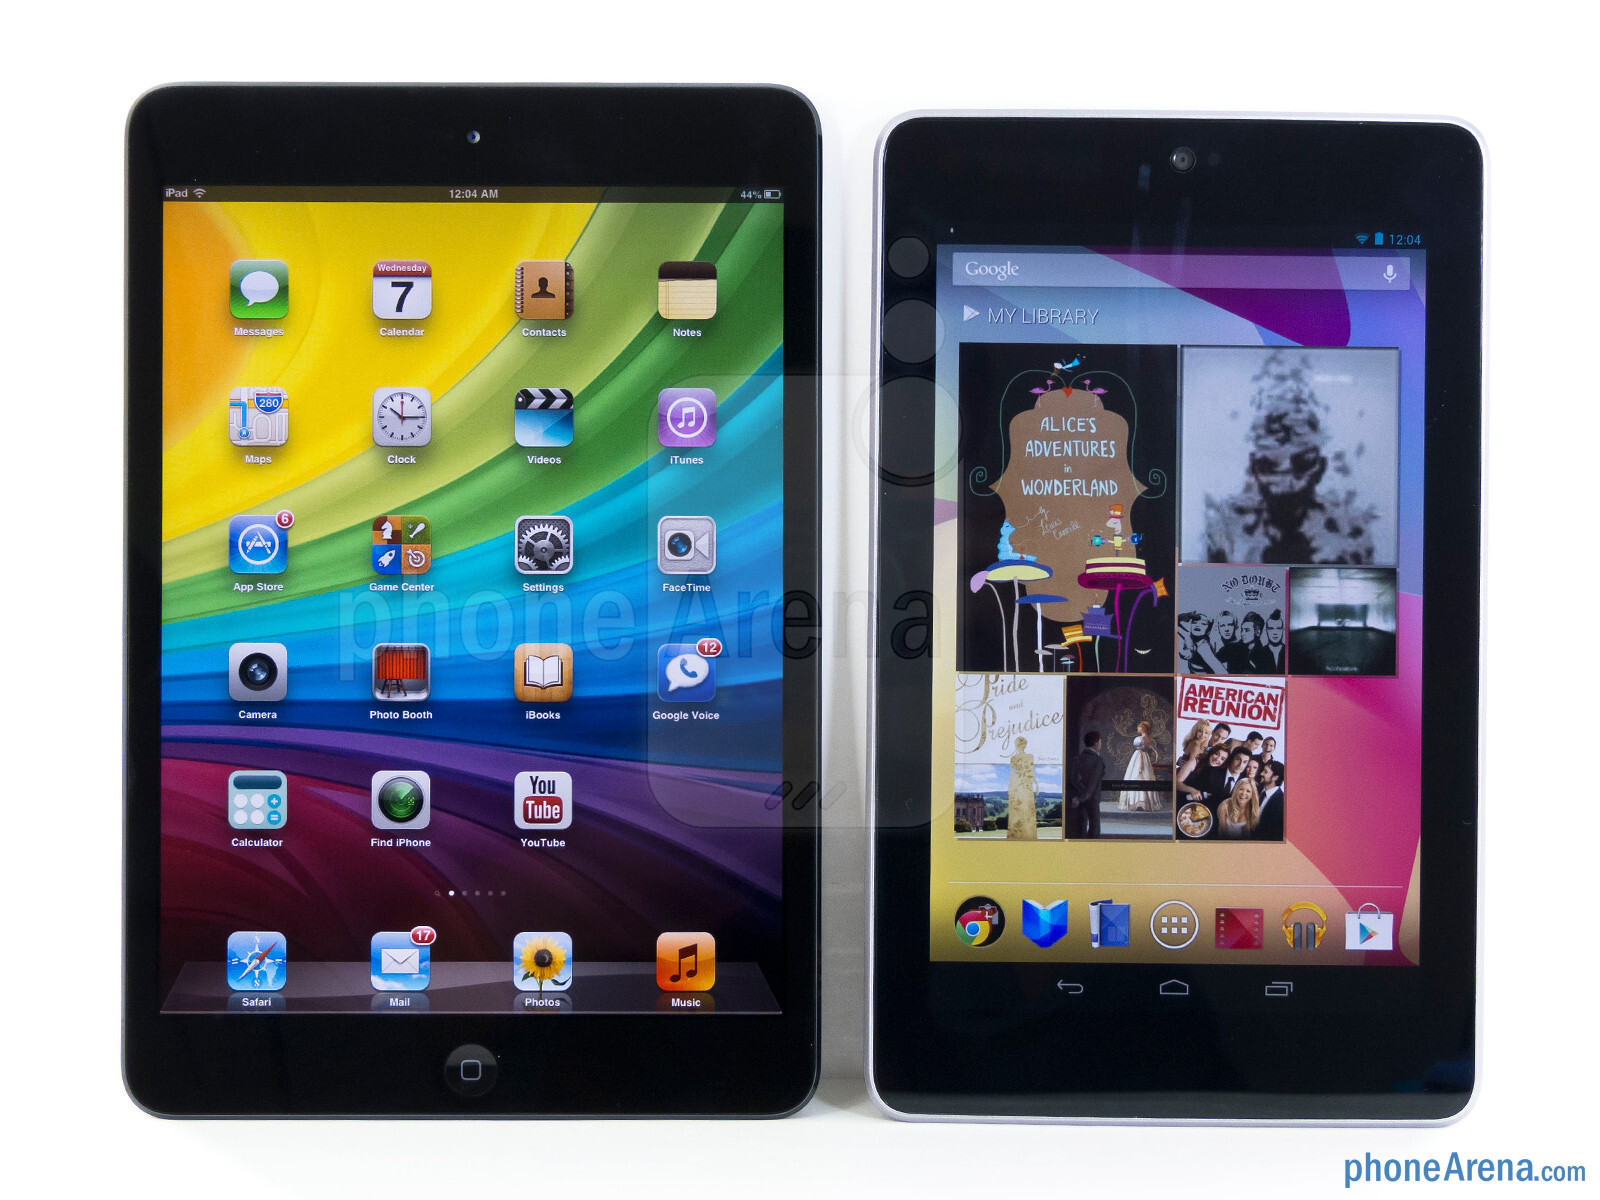 Is the Nexus 7 better or worse than an iPad?